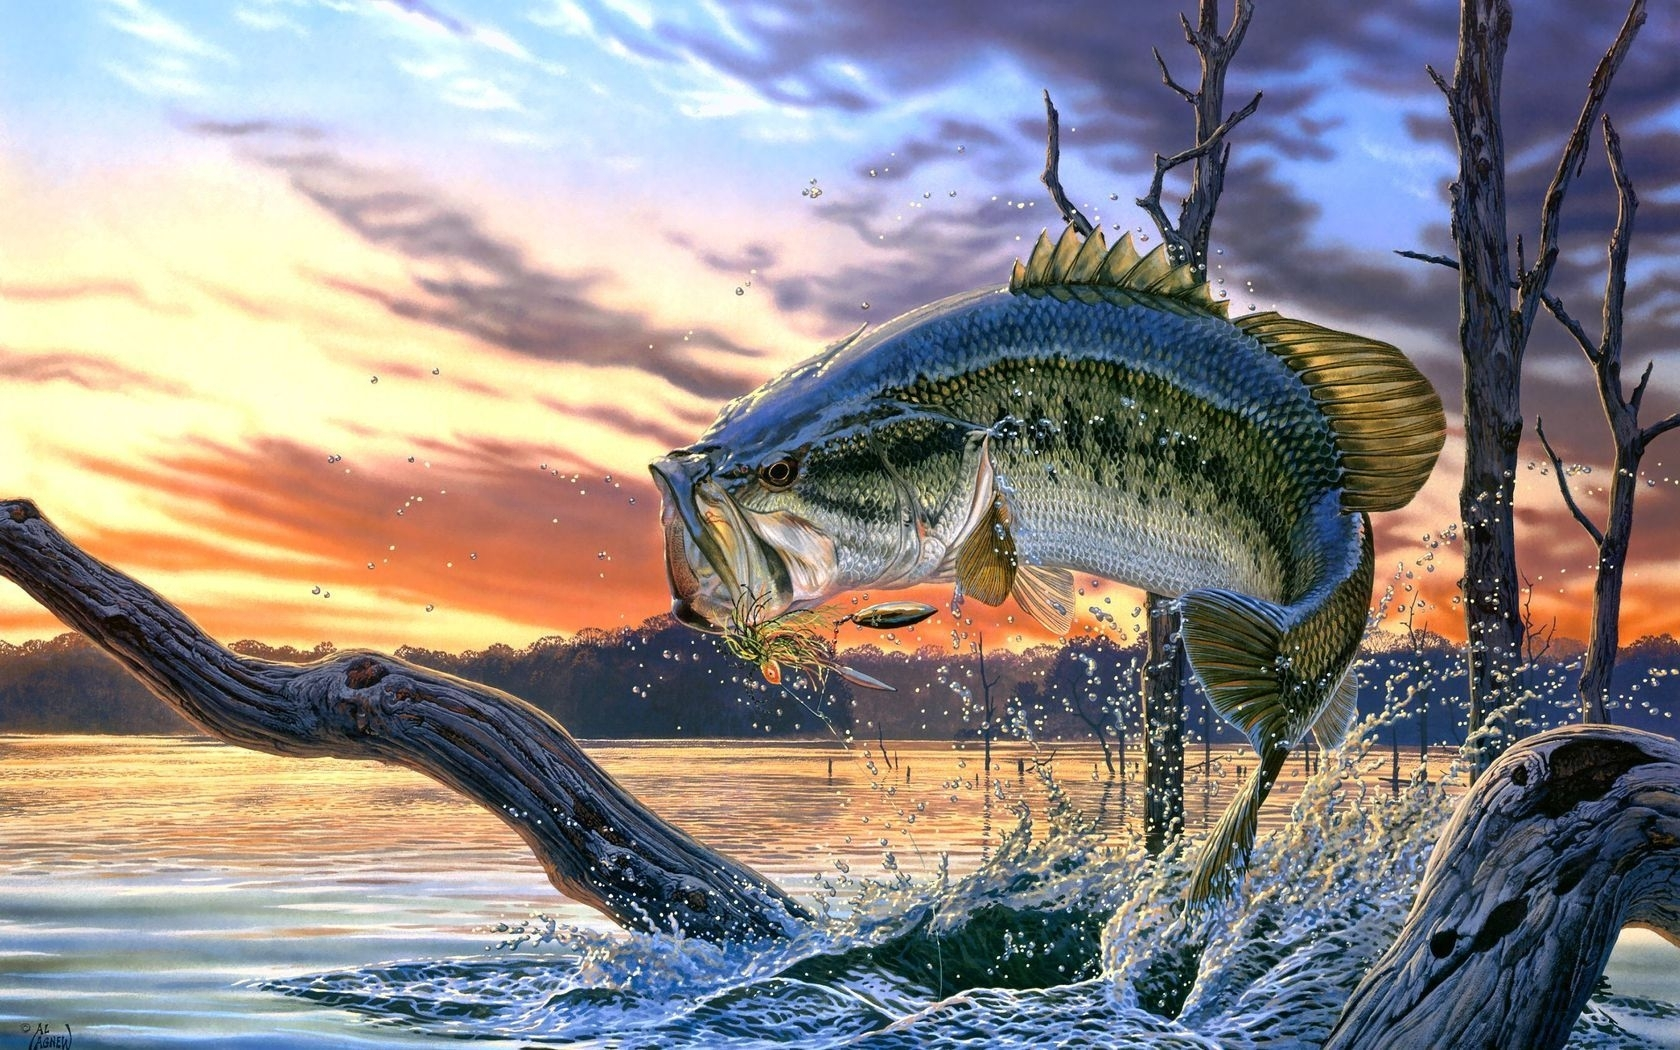 bass images of fish | largemouth bass fishing wallpaper background